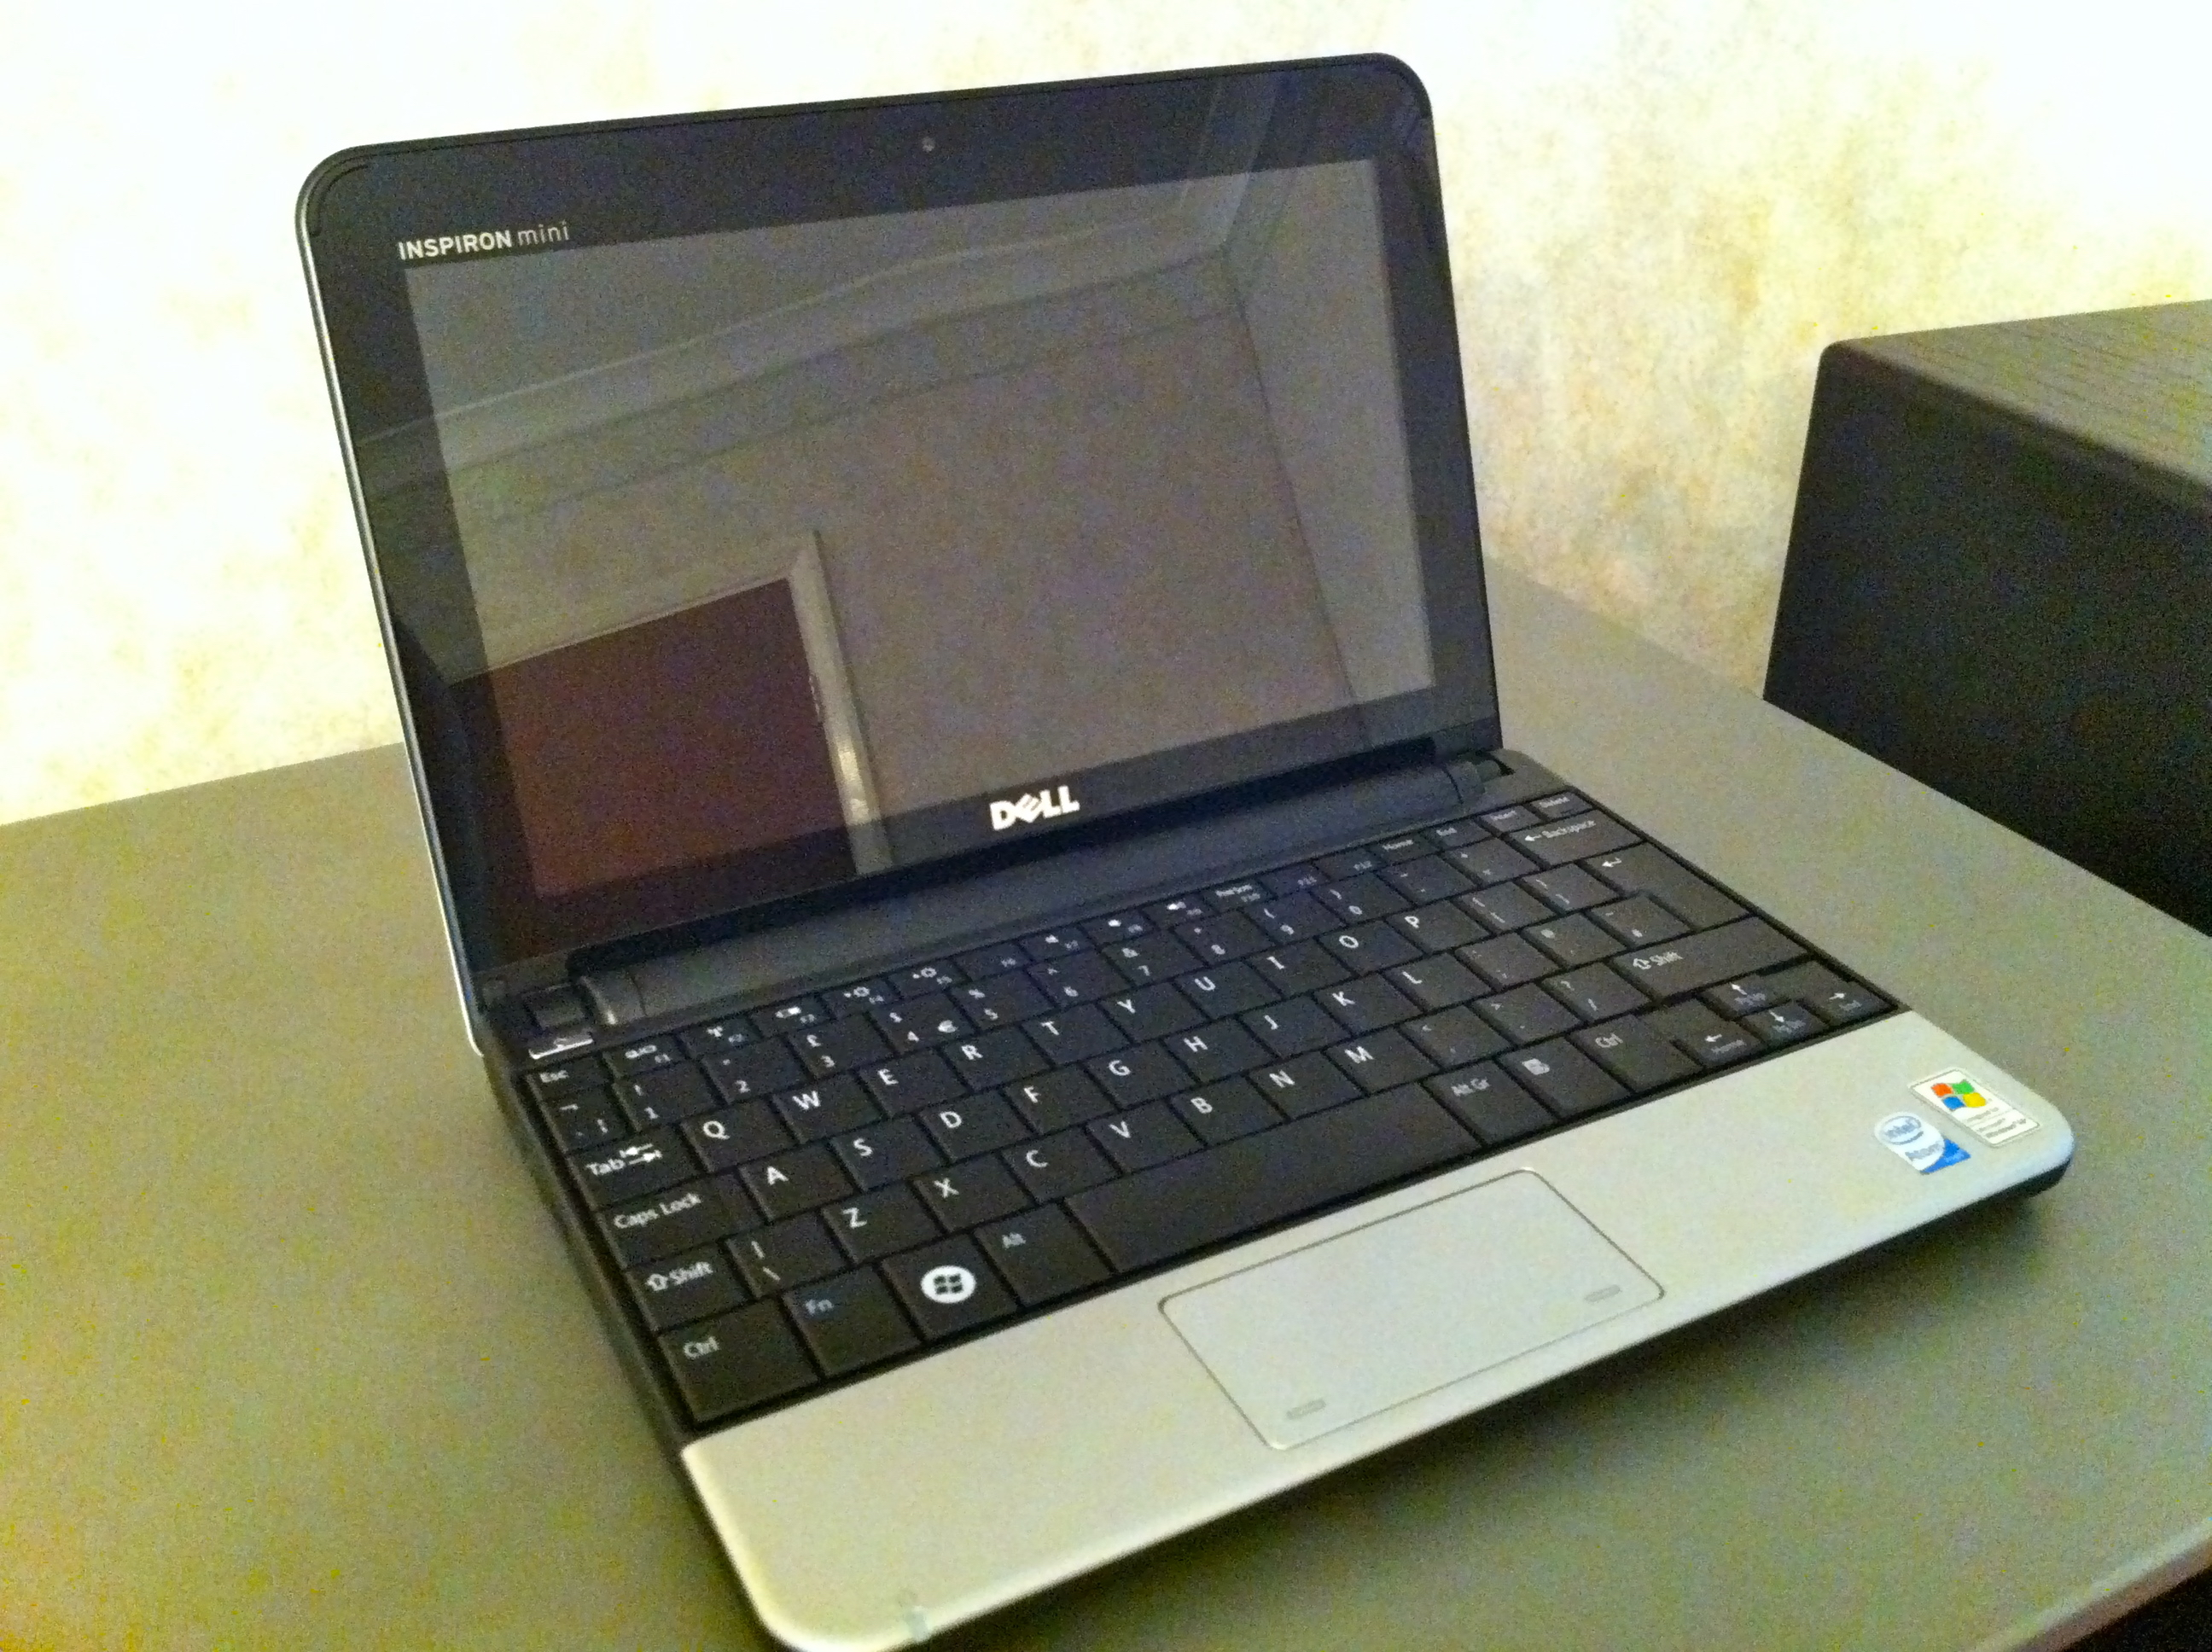 An opened but switched off Dell Inspiron Mini 10 Notebook.  It has a glossy screen, black bezel and keyboard and a silver trackpad and wrist rest area